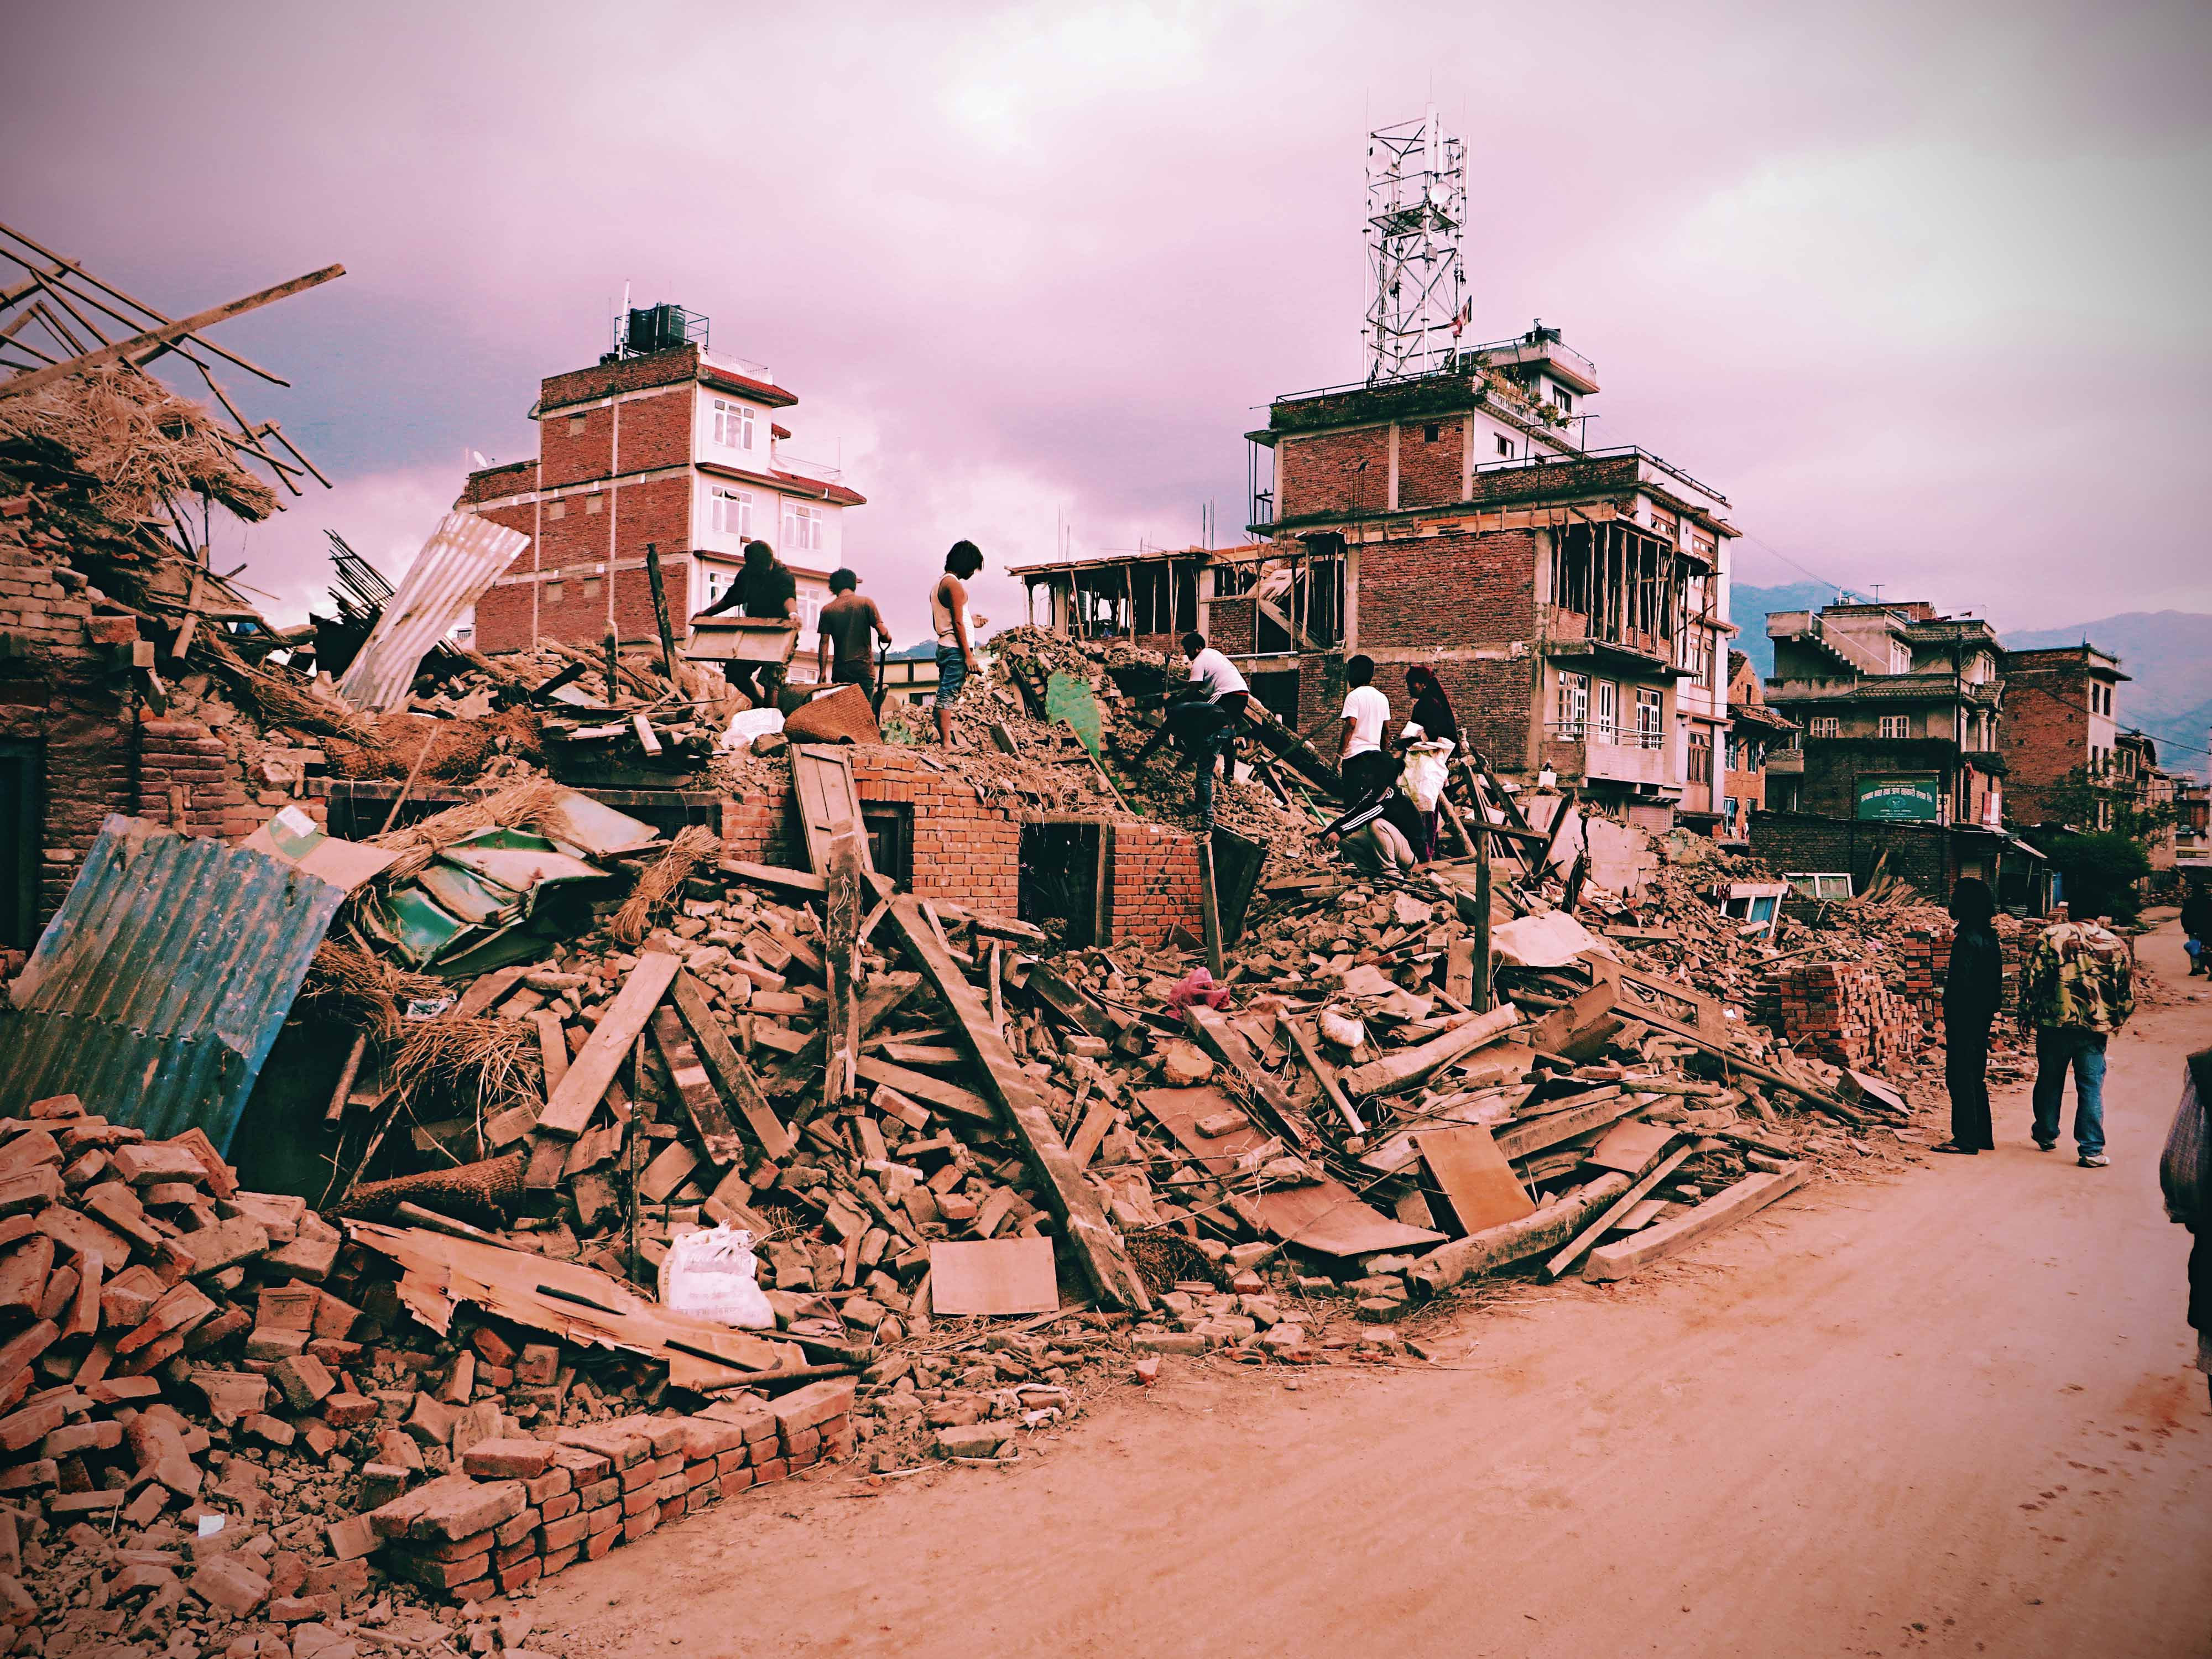 People Tree launches fundraising campaign for Nepal